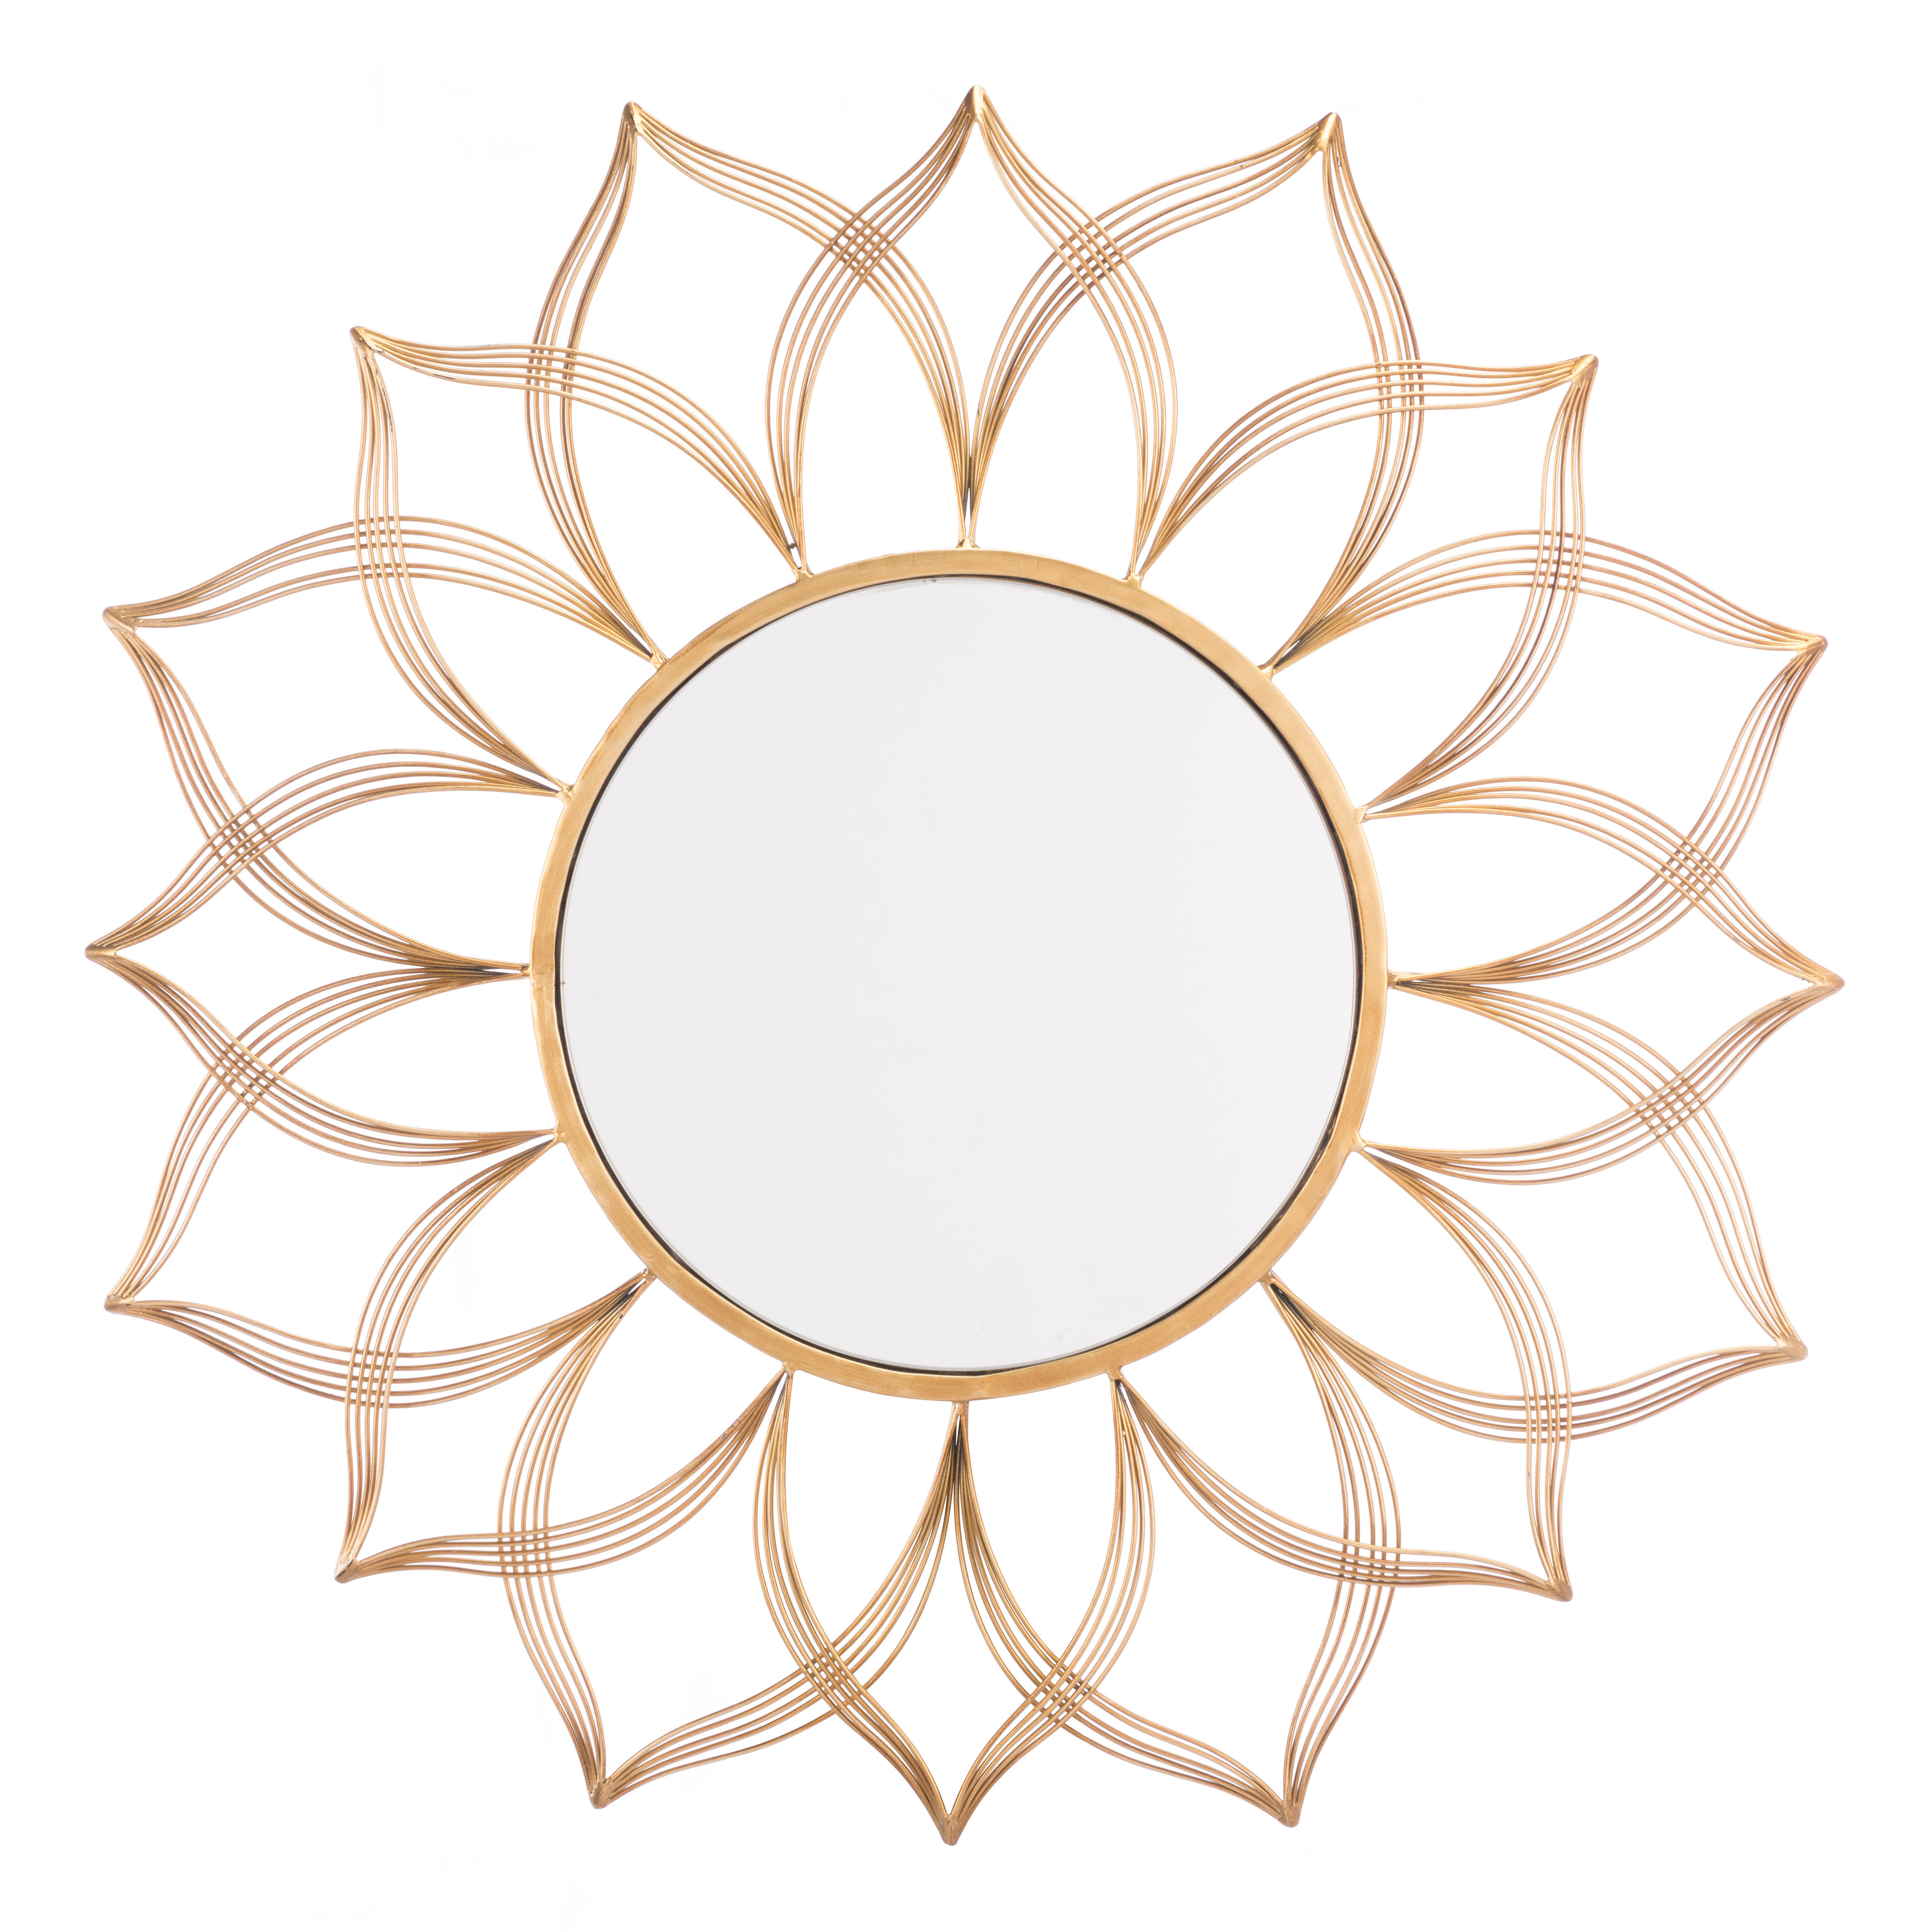 Abbotsford Flower Accent Mirror & Reviews | Joss & Main Intended For Brynn Accent Mirrors (View 20 of 30)